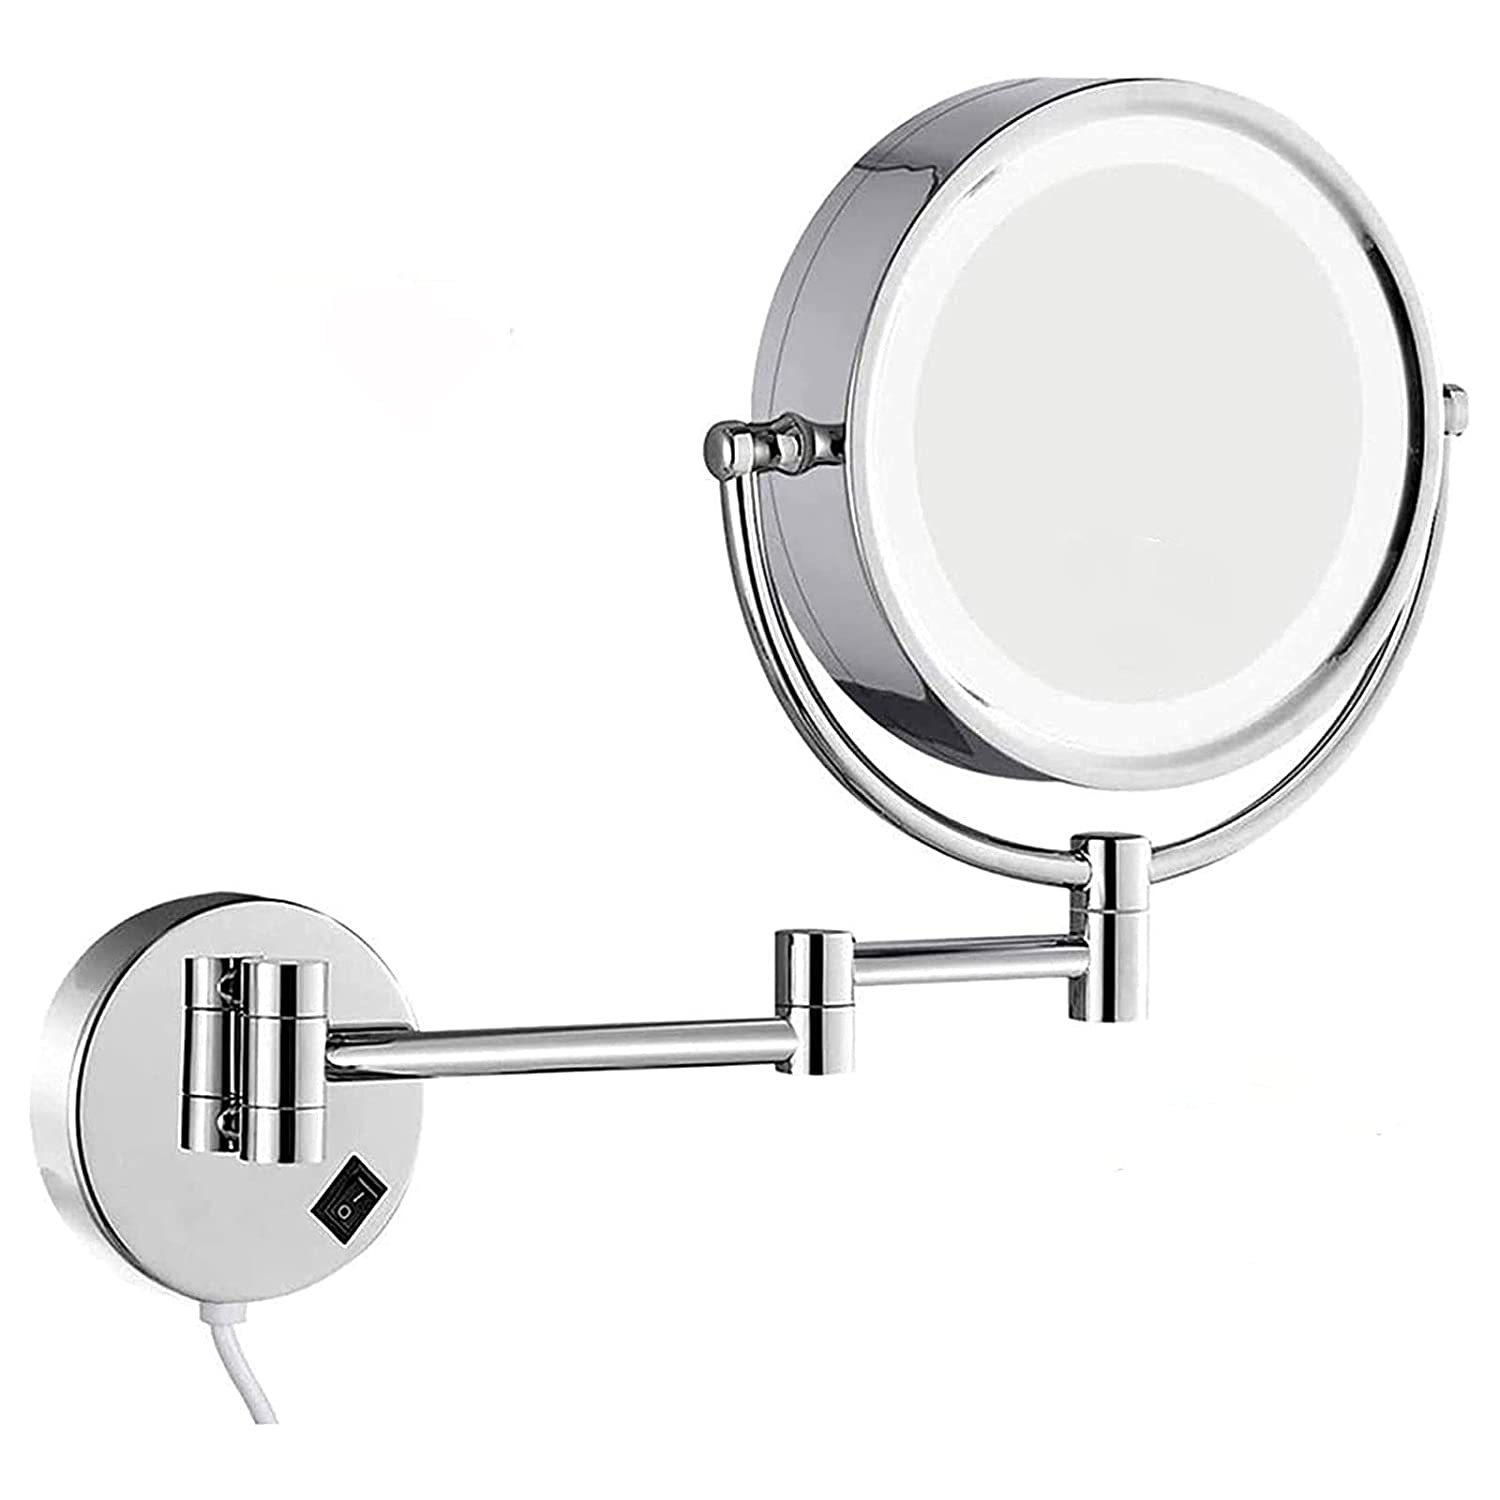 Blacklight High quality new Bathroom vanity mirror led perforation with Limited Special Price fre light